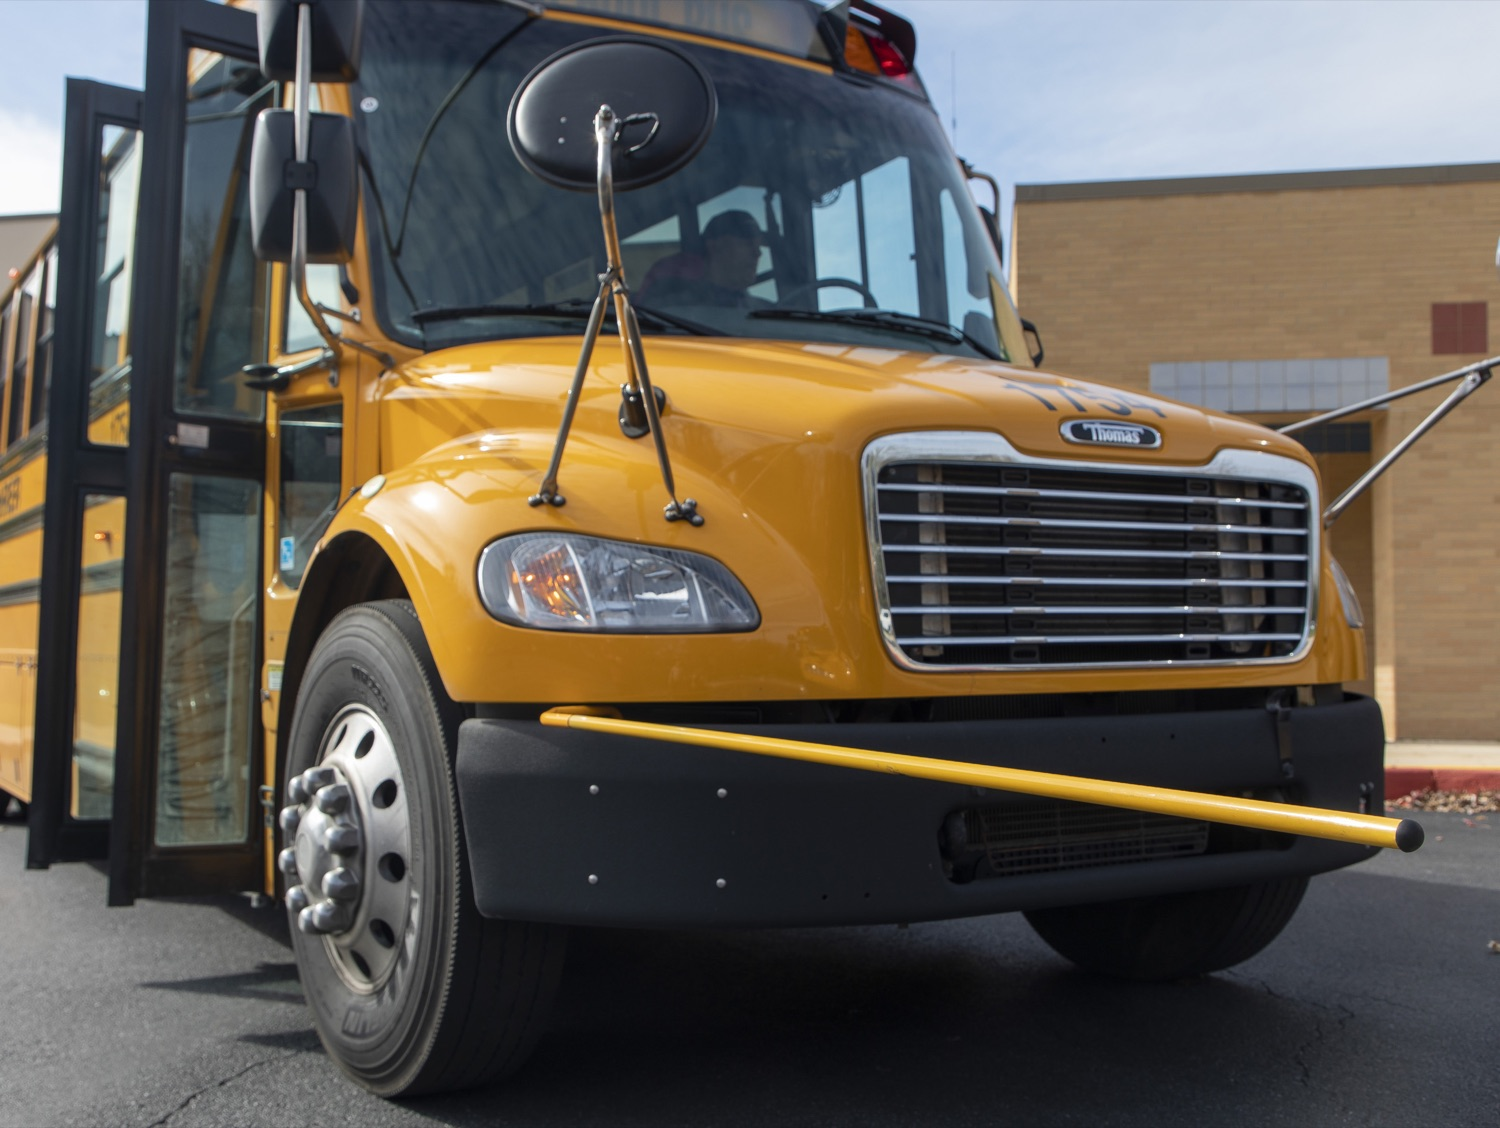 "<a href=""http://filesource.abacast.com/commonwealthofpa/photo/17458_pdot_safeStop_0008.jpg"" target=""_blank"">⇣ Download Photo<br></a>Wolf Administration Stresses School Bus Safety, Announces Results of Enforcement Initiative"